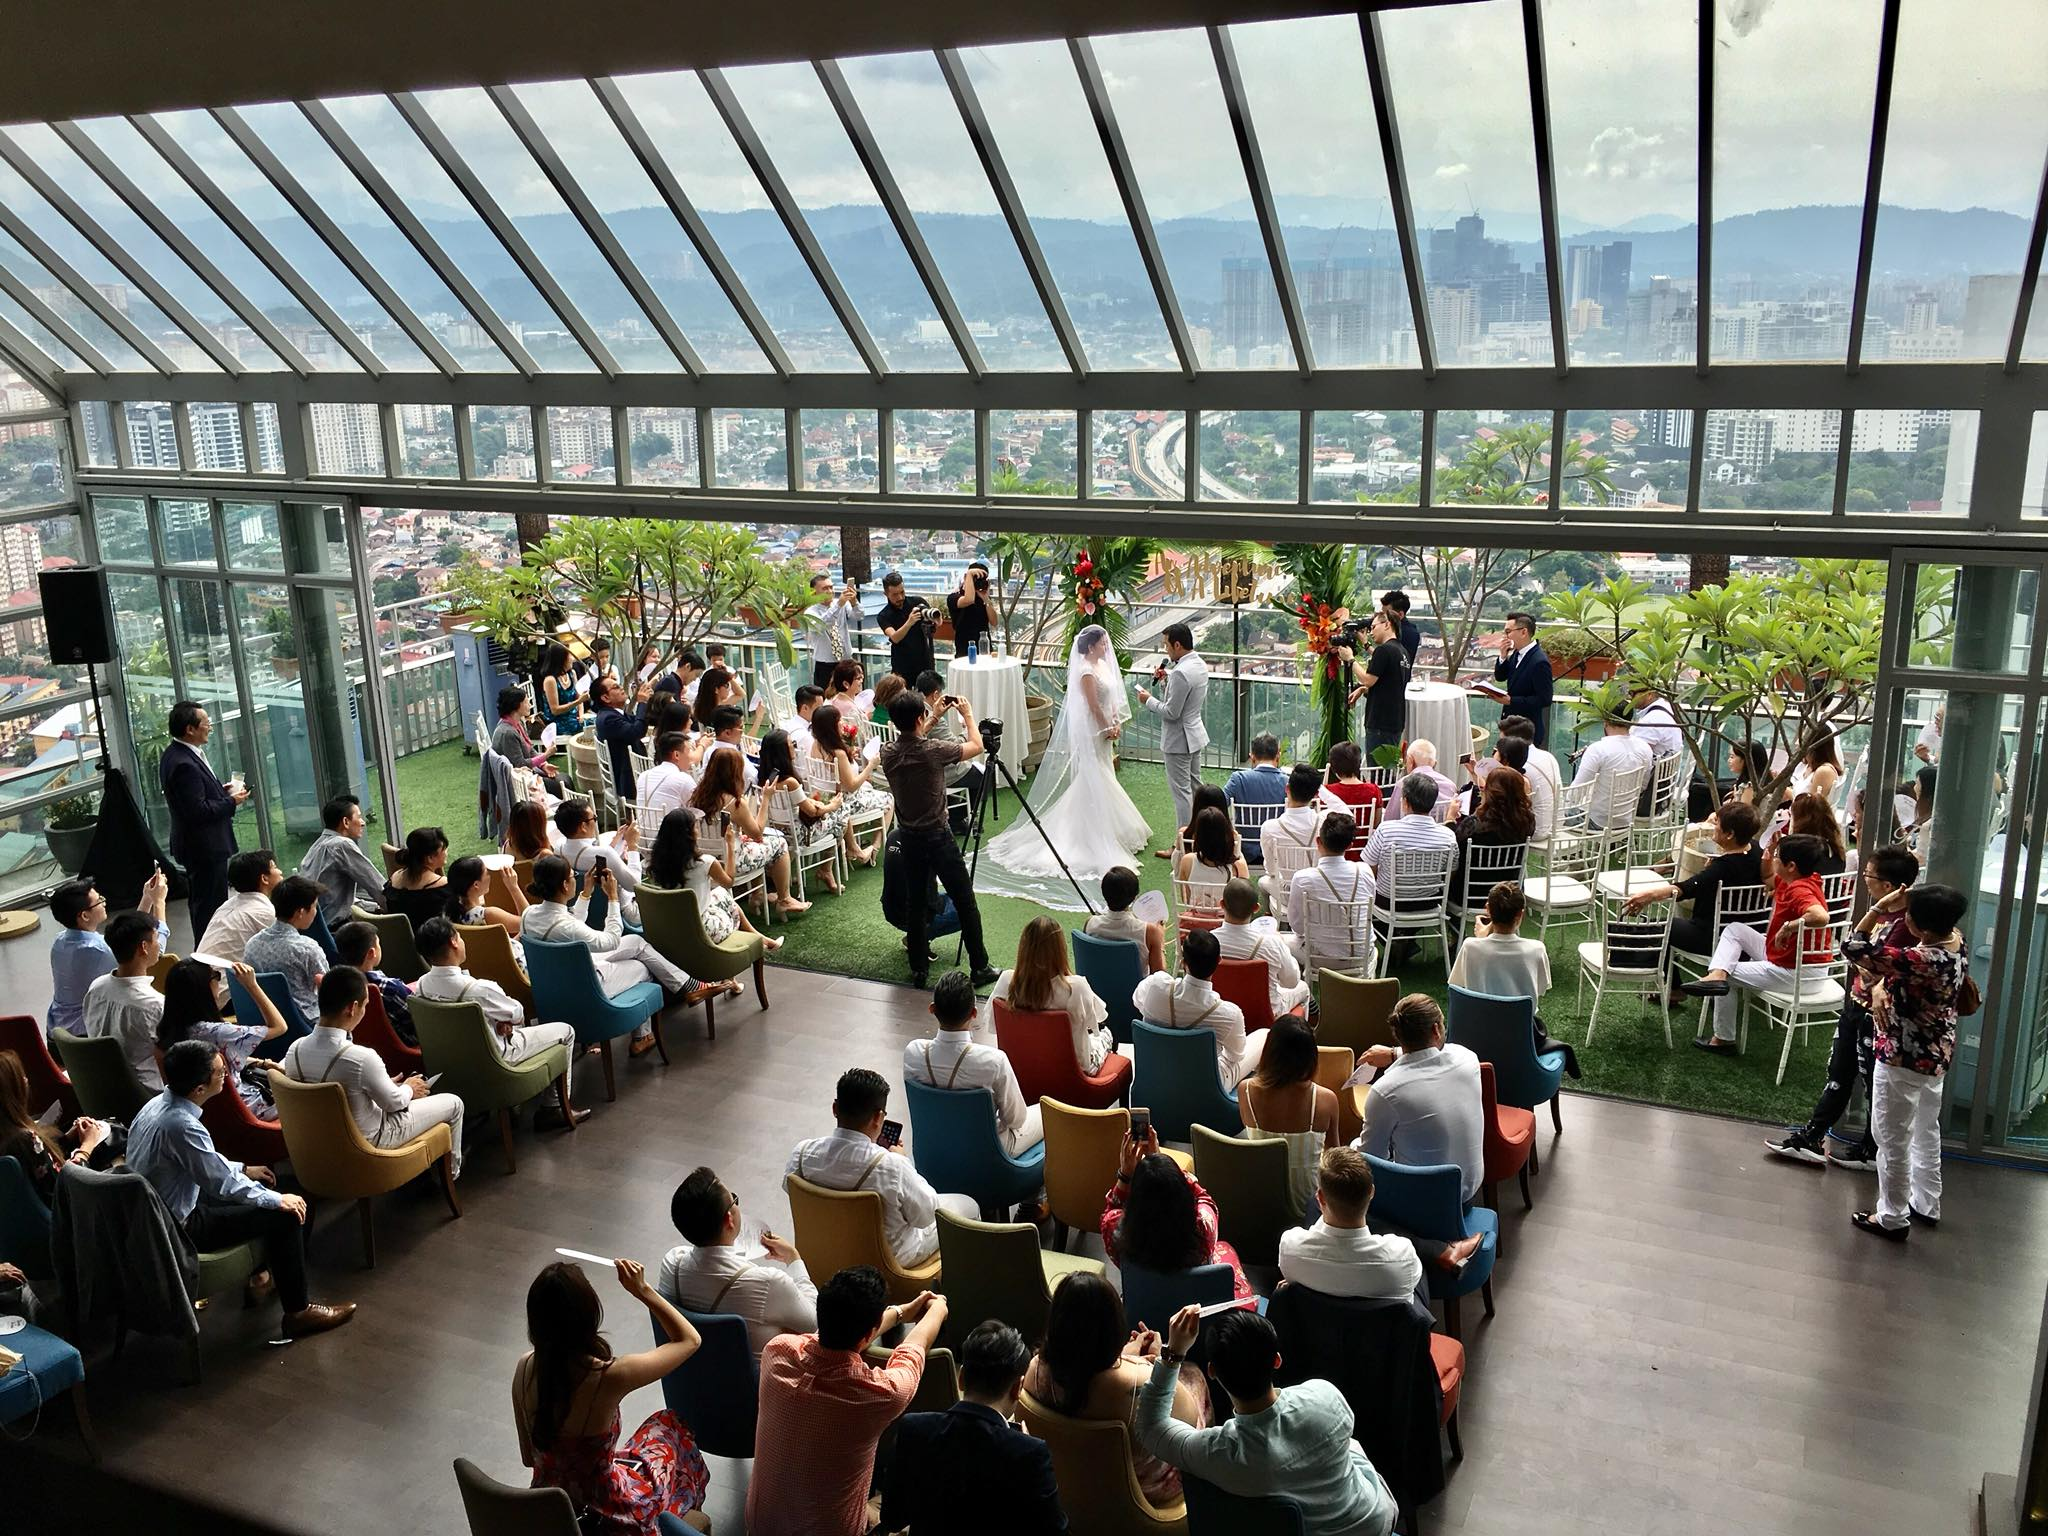 Image from Roofino Skydining and Bar